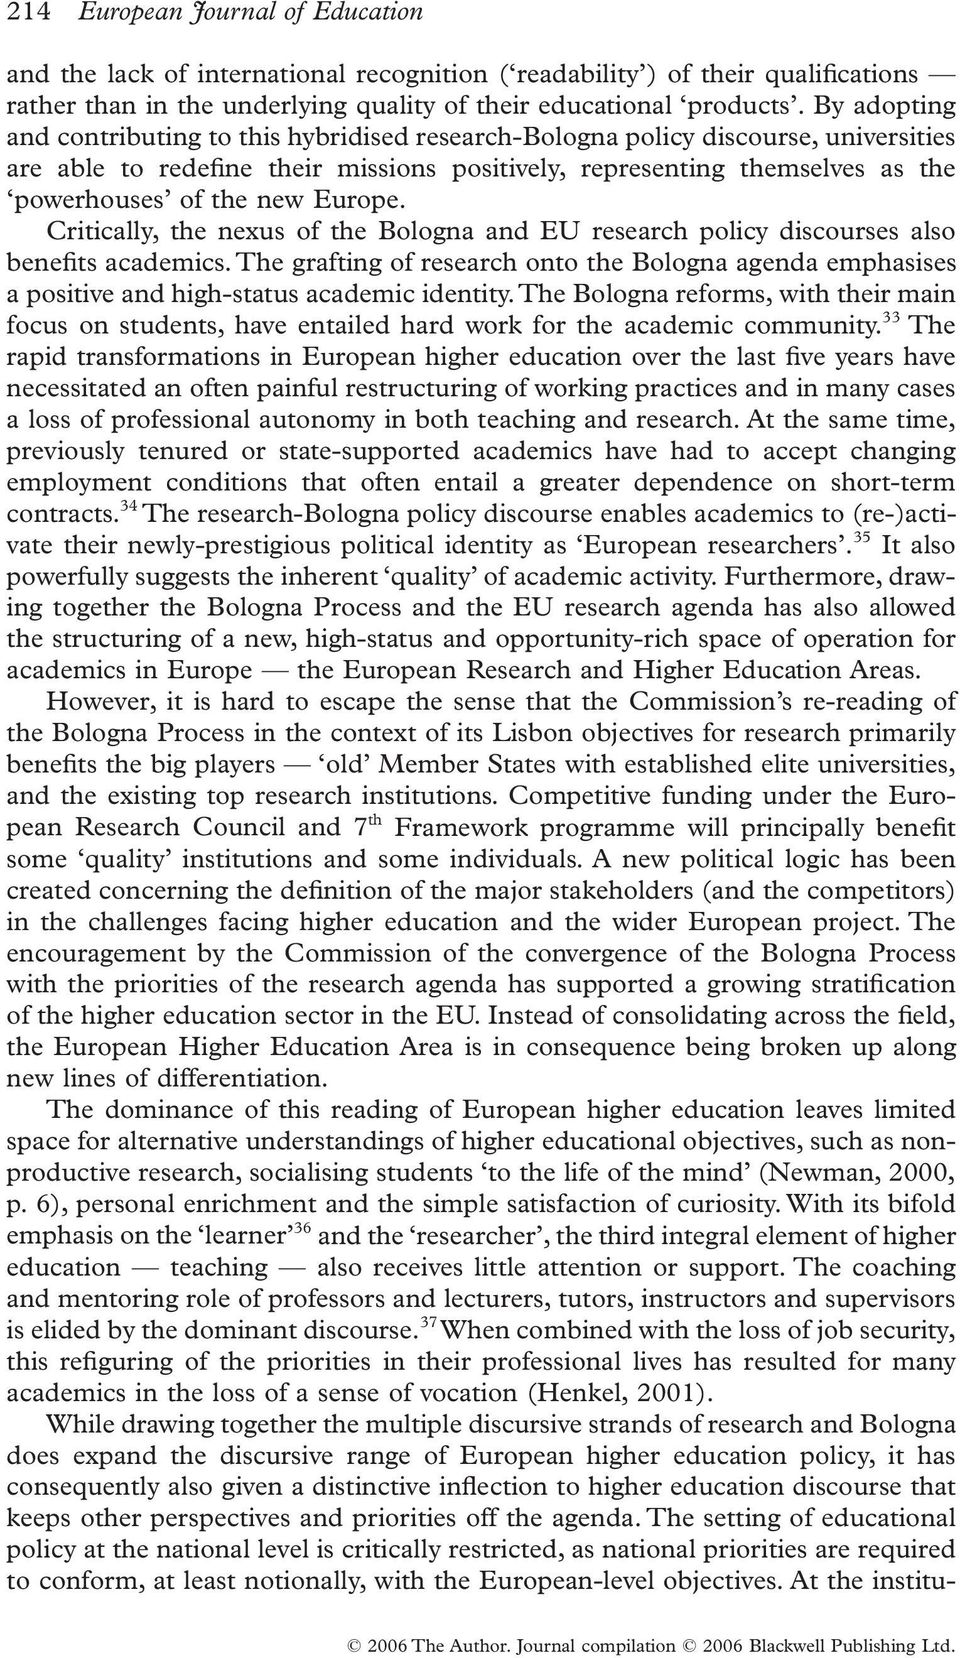 Europe. Critically, the nexus of the Bologna and EU research policy discourses also benefits academics.